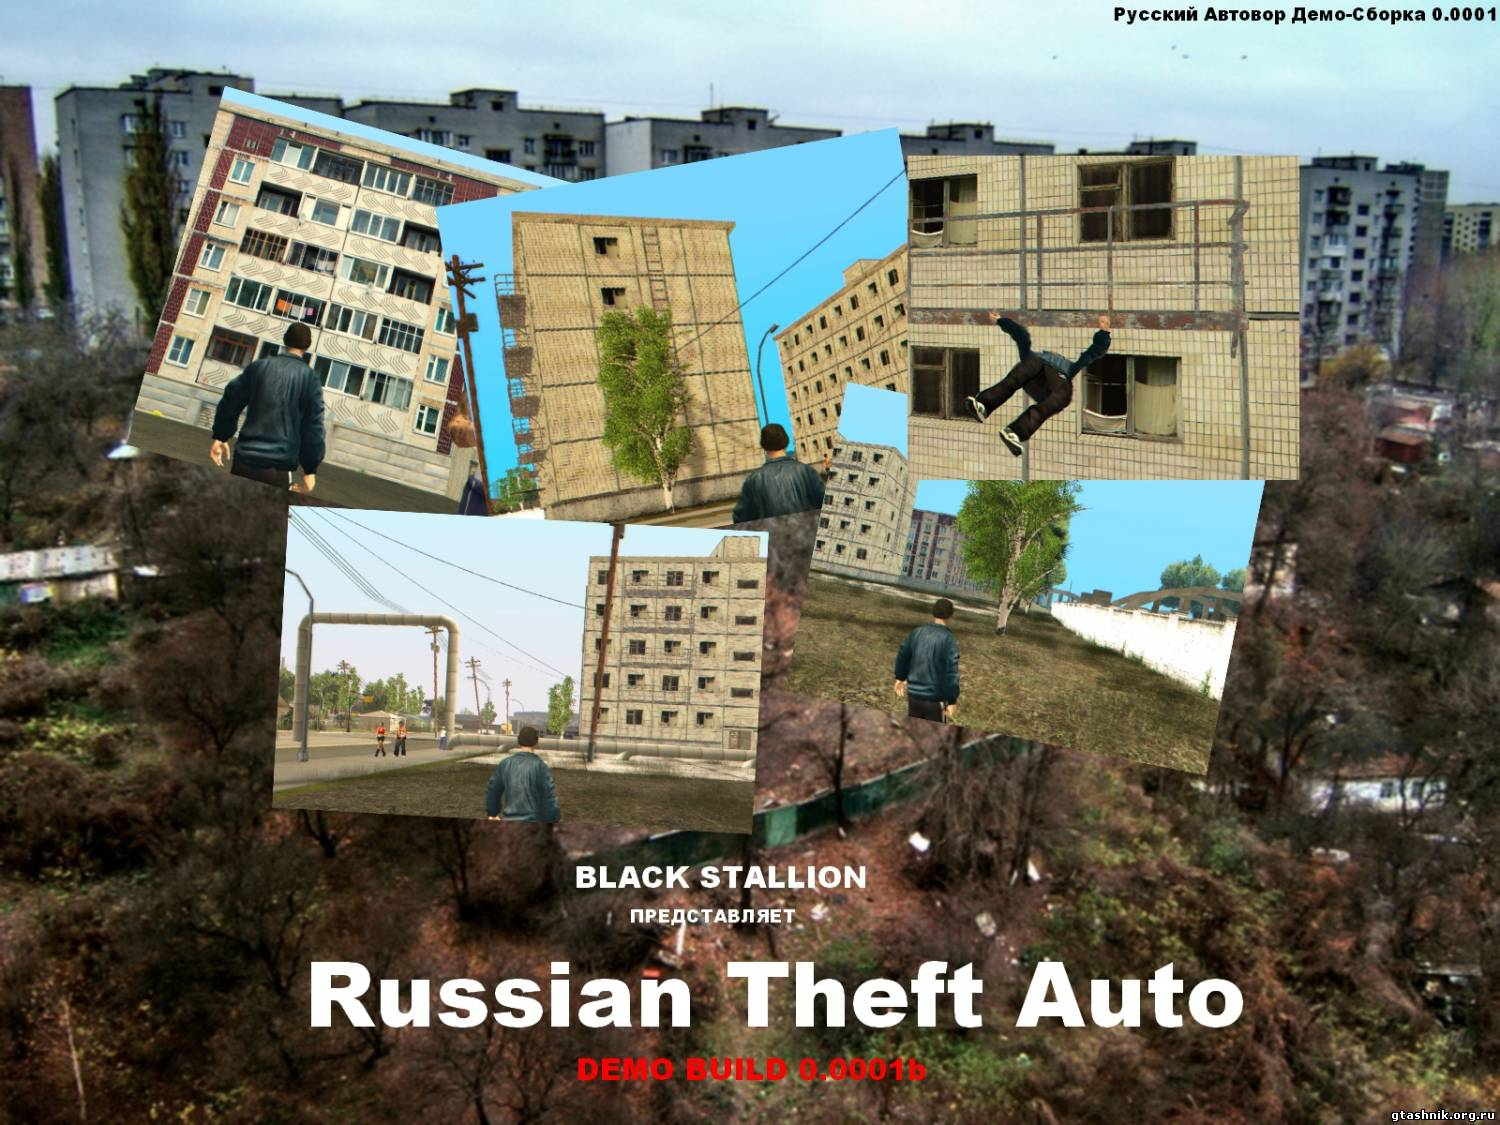 Russain Theft Auto Demo Build 0.0001b